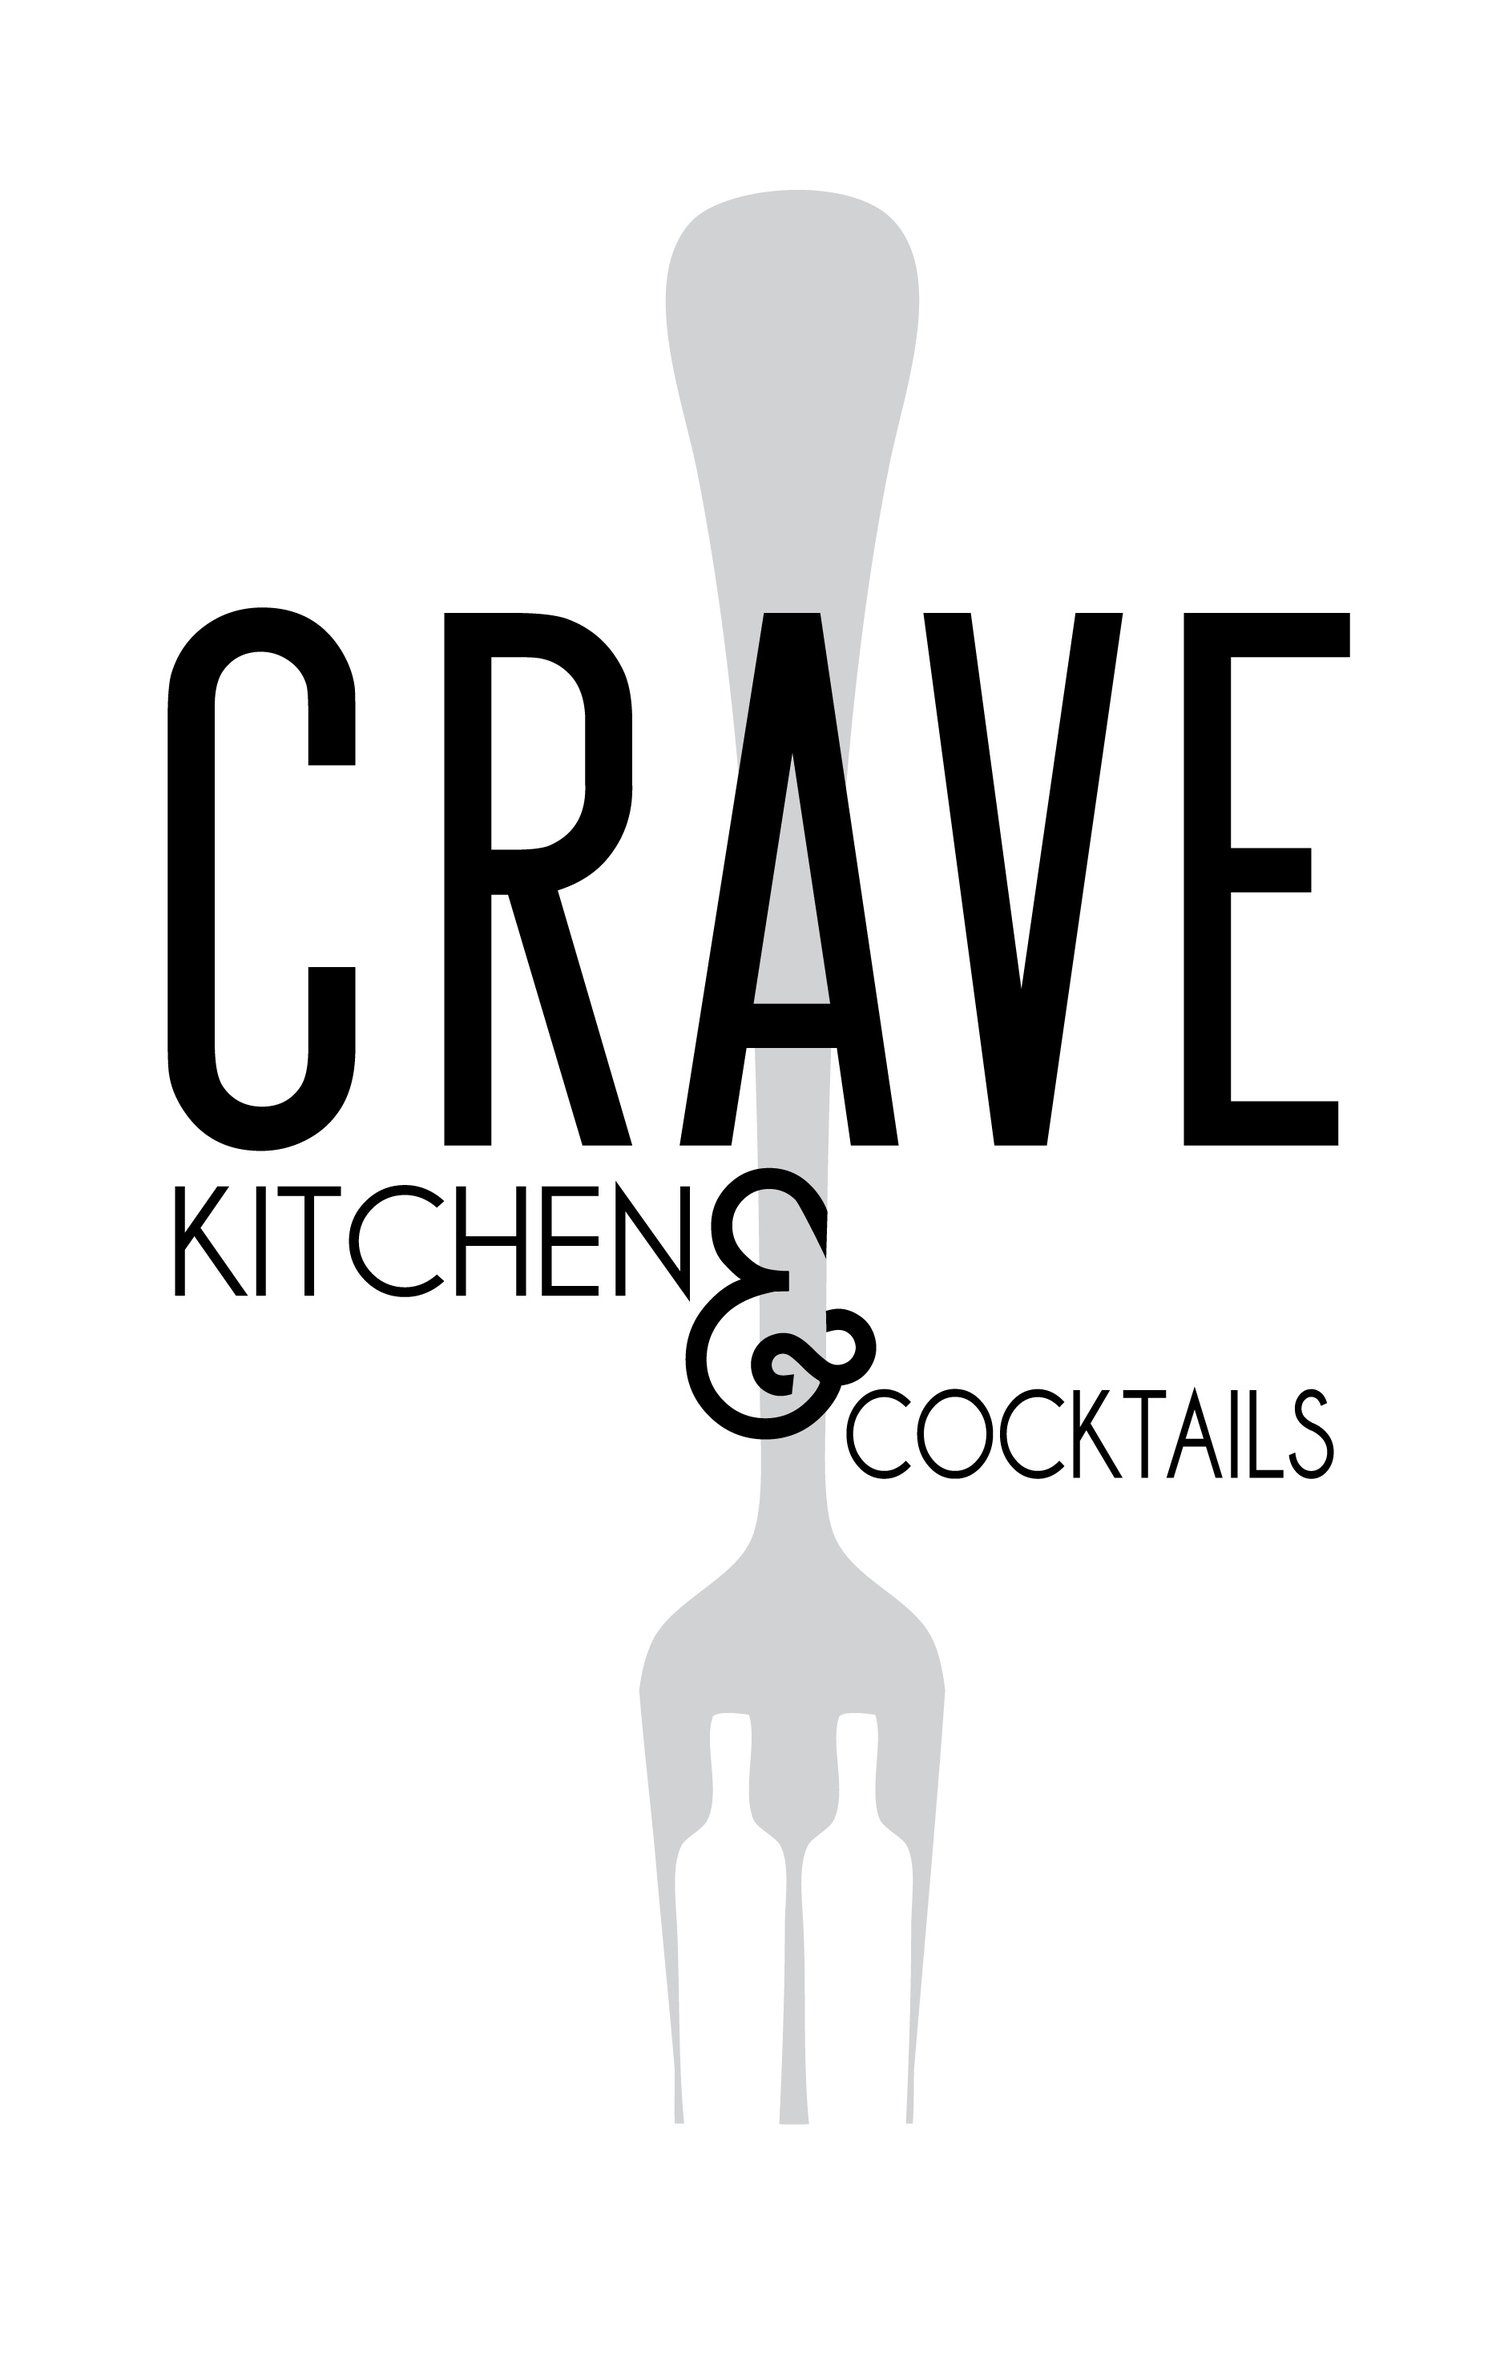 Crave Kitchen and Cocktails